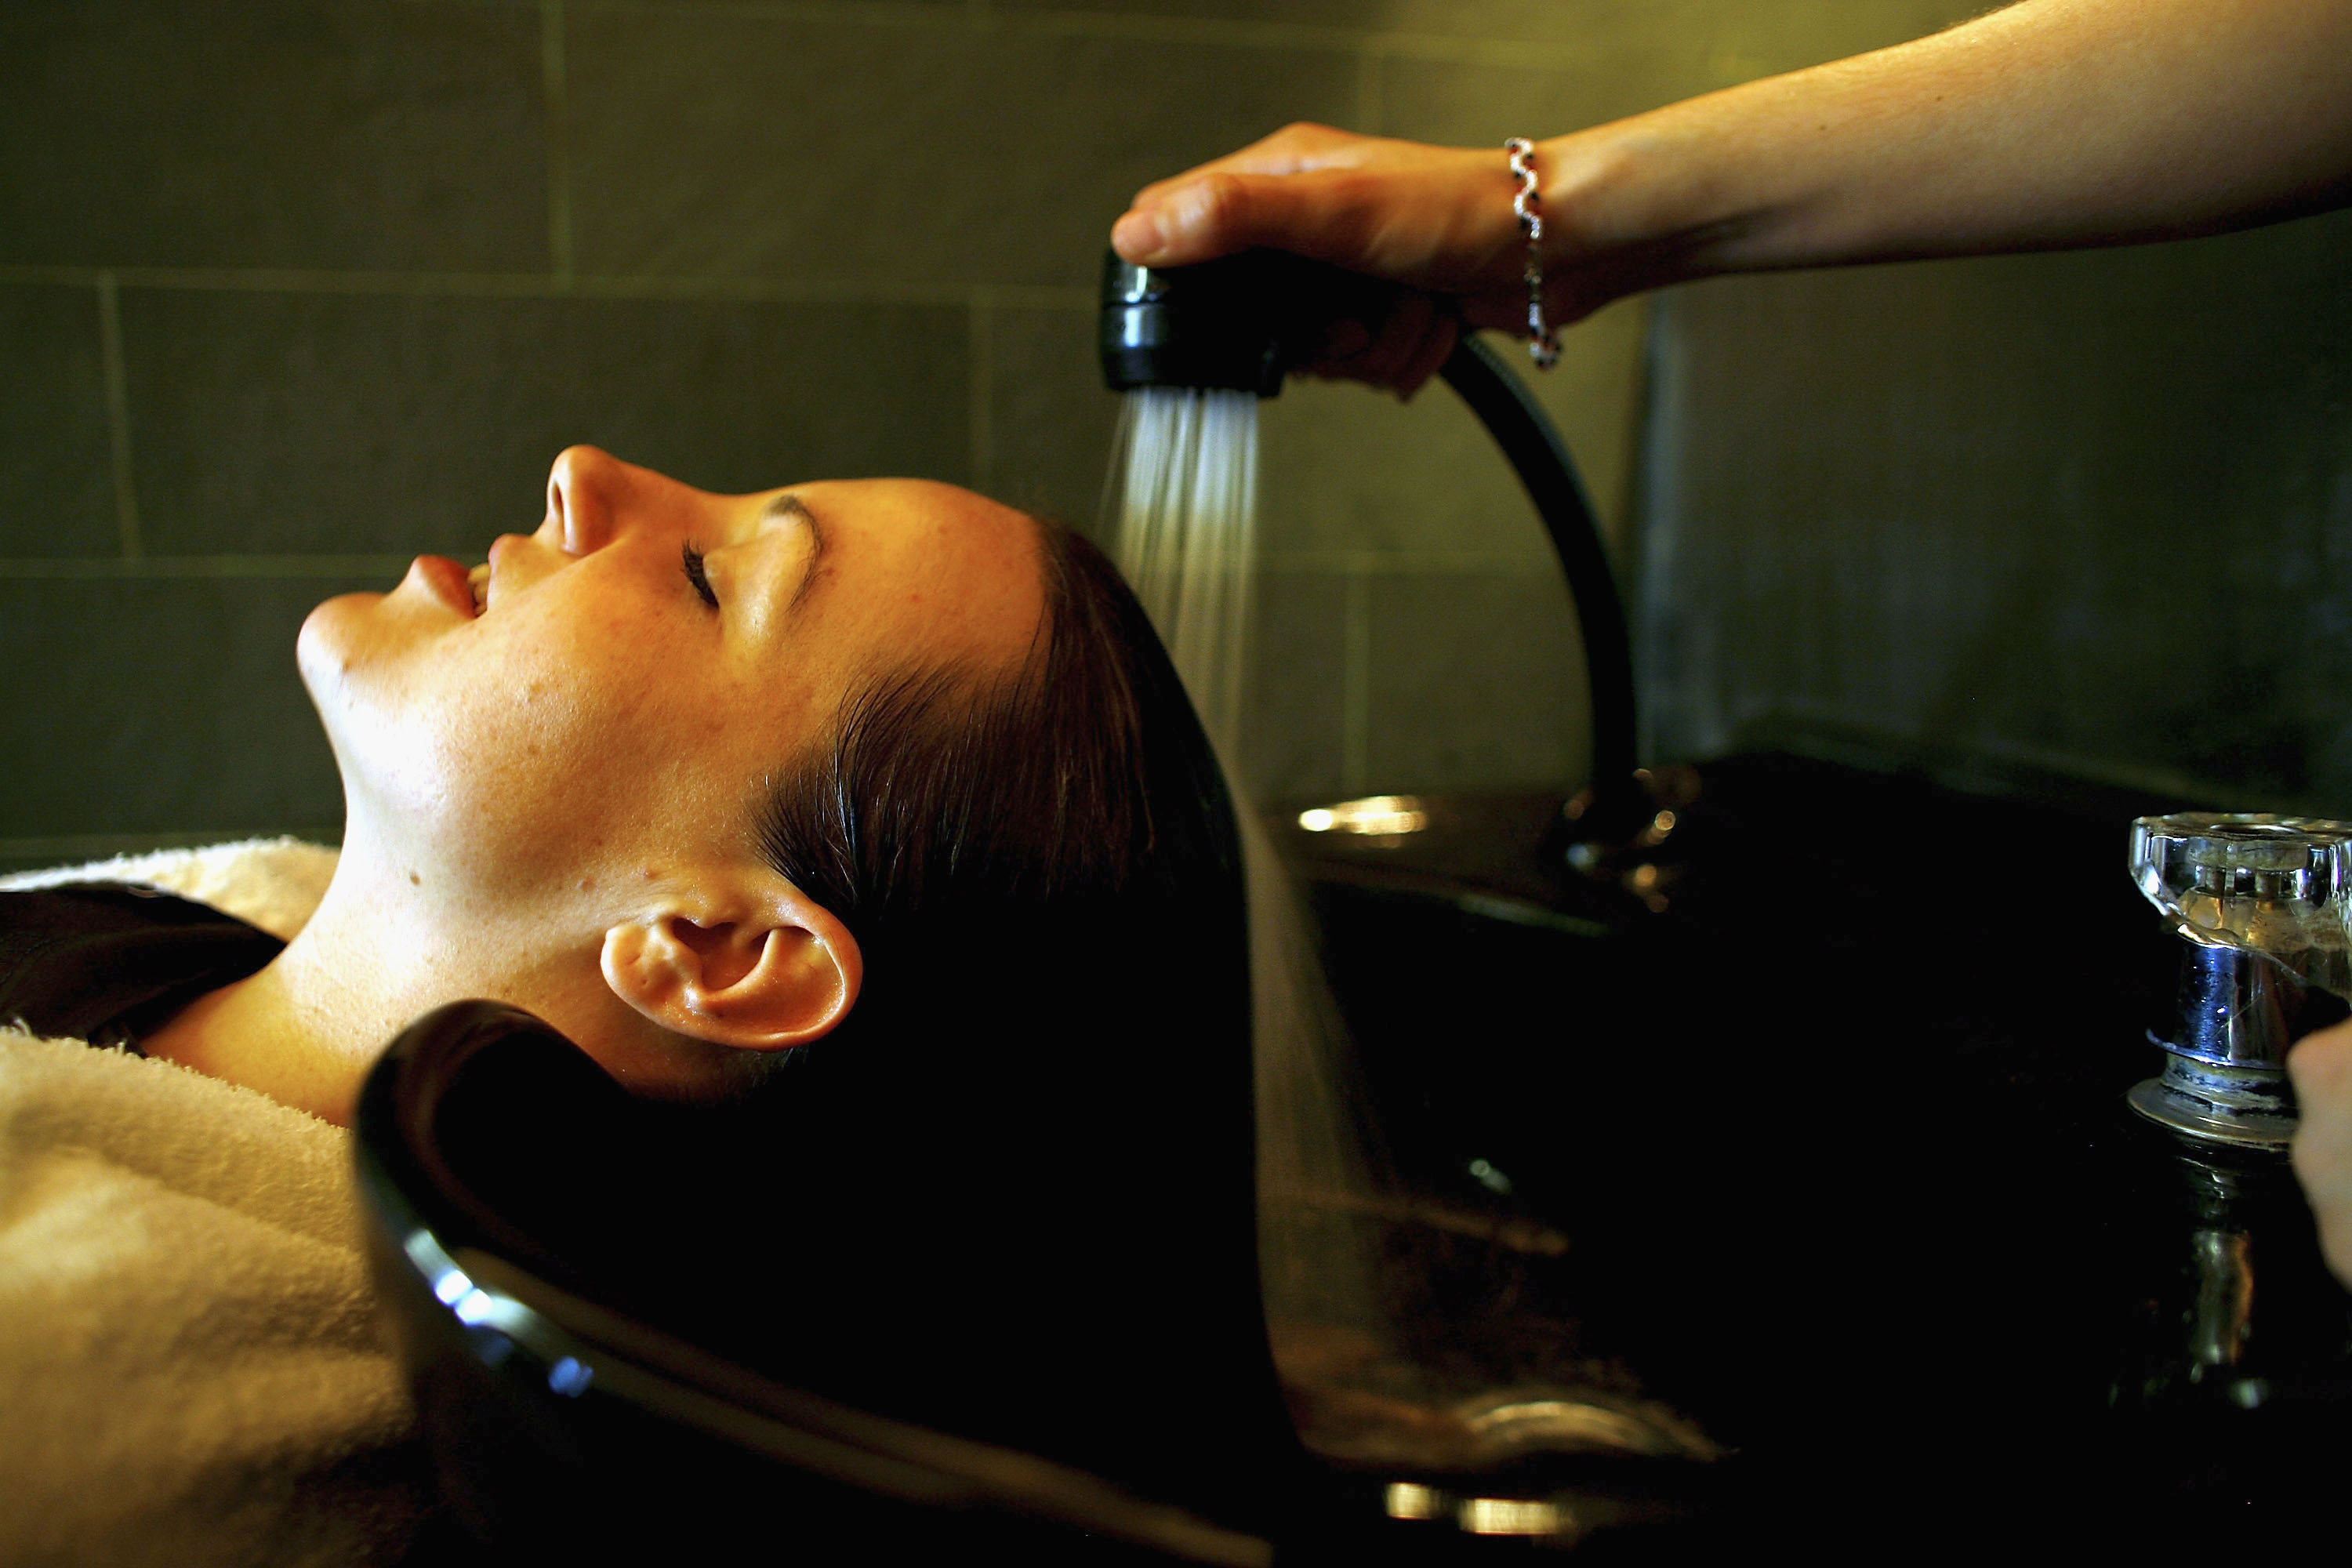 How Much To Tip 9 Types Of Beauty Professionals If Youre Really Not